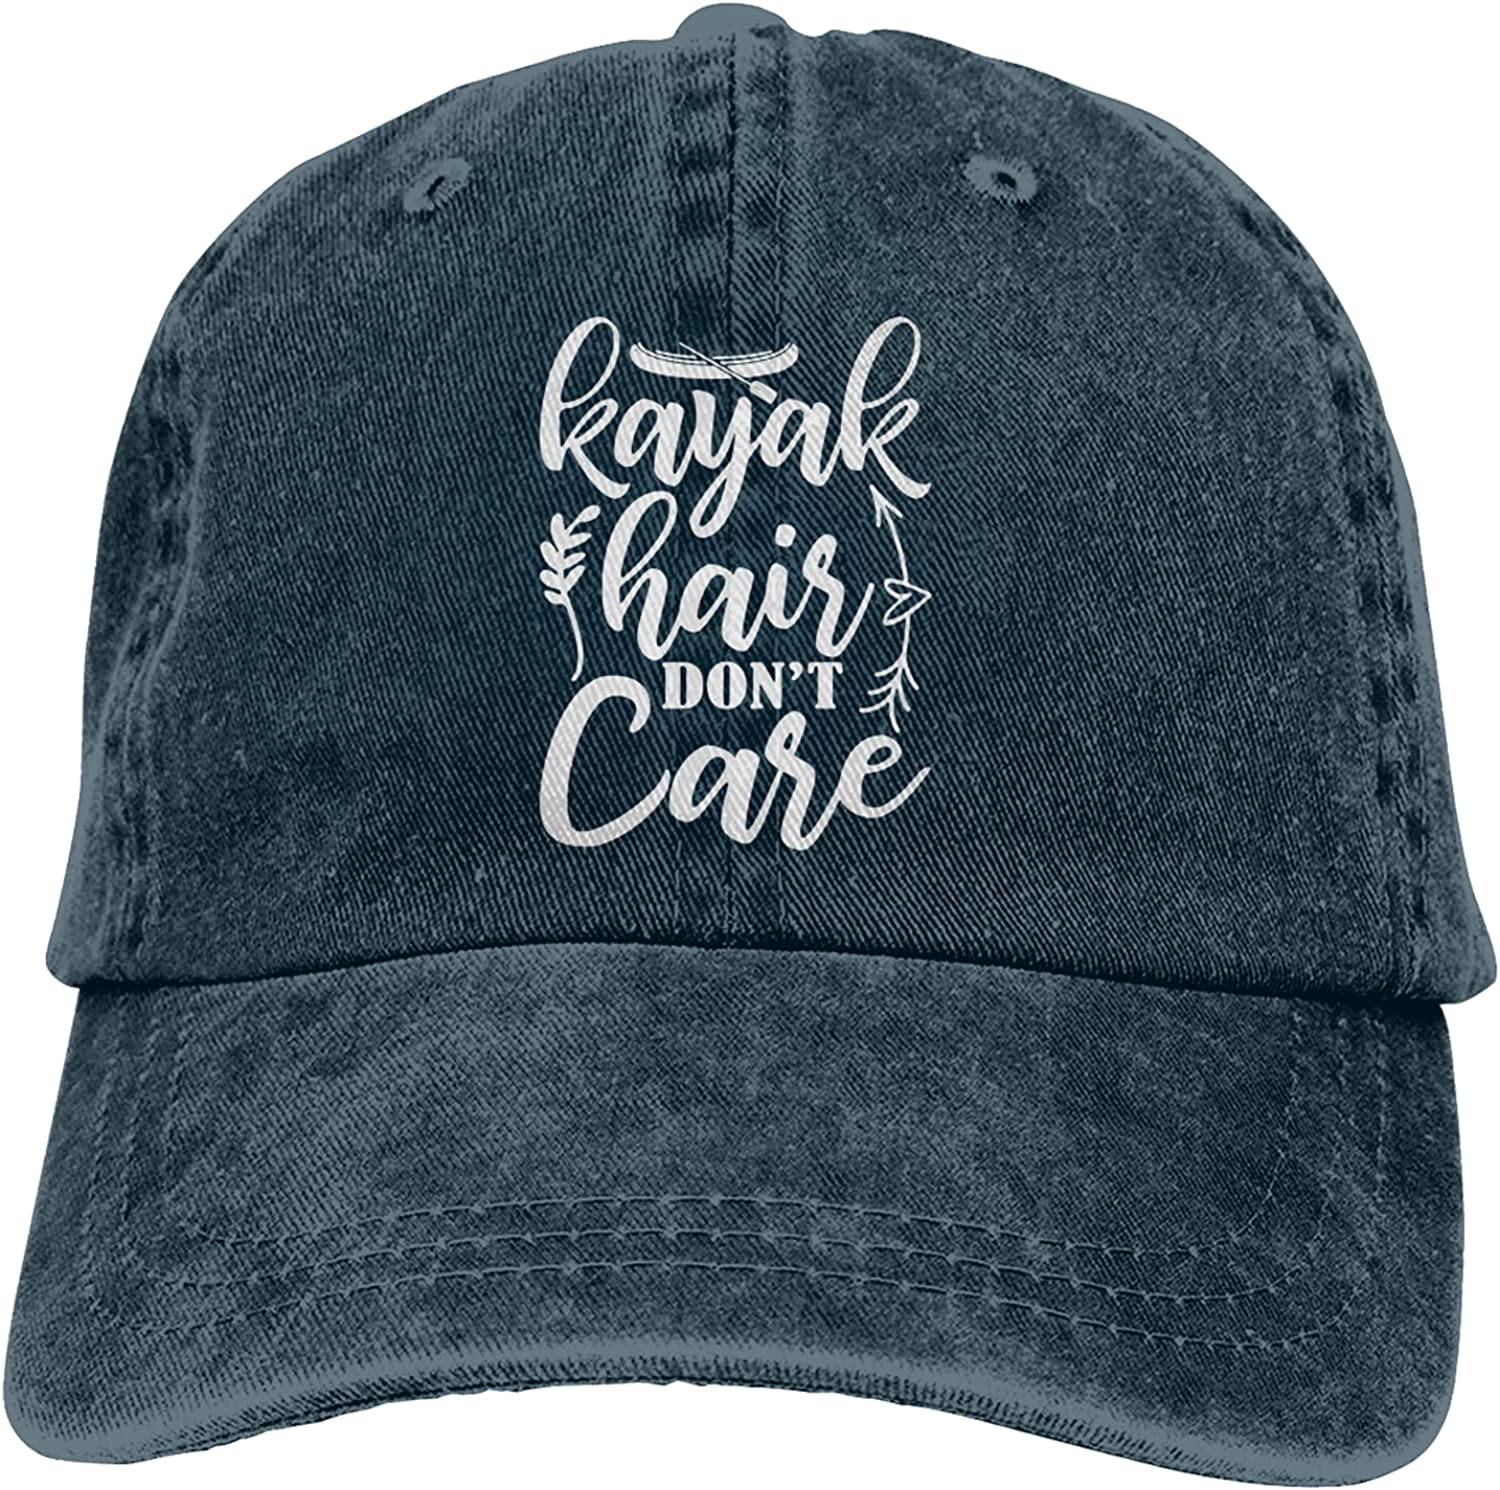 Kayak Hair Don't Care Cap Man's Dad At the price D Woman Truck Purchase Adjustable